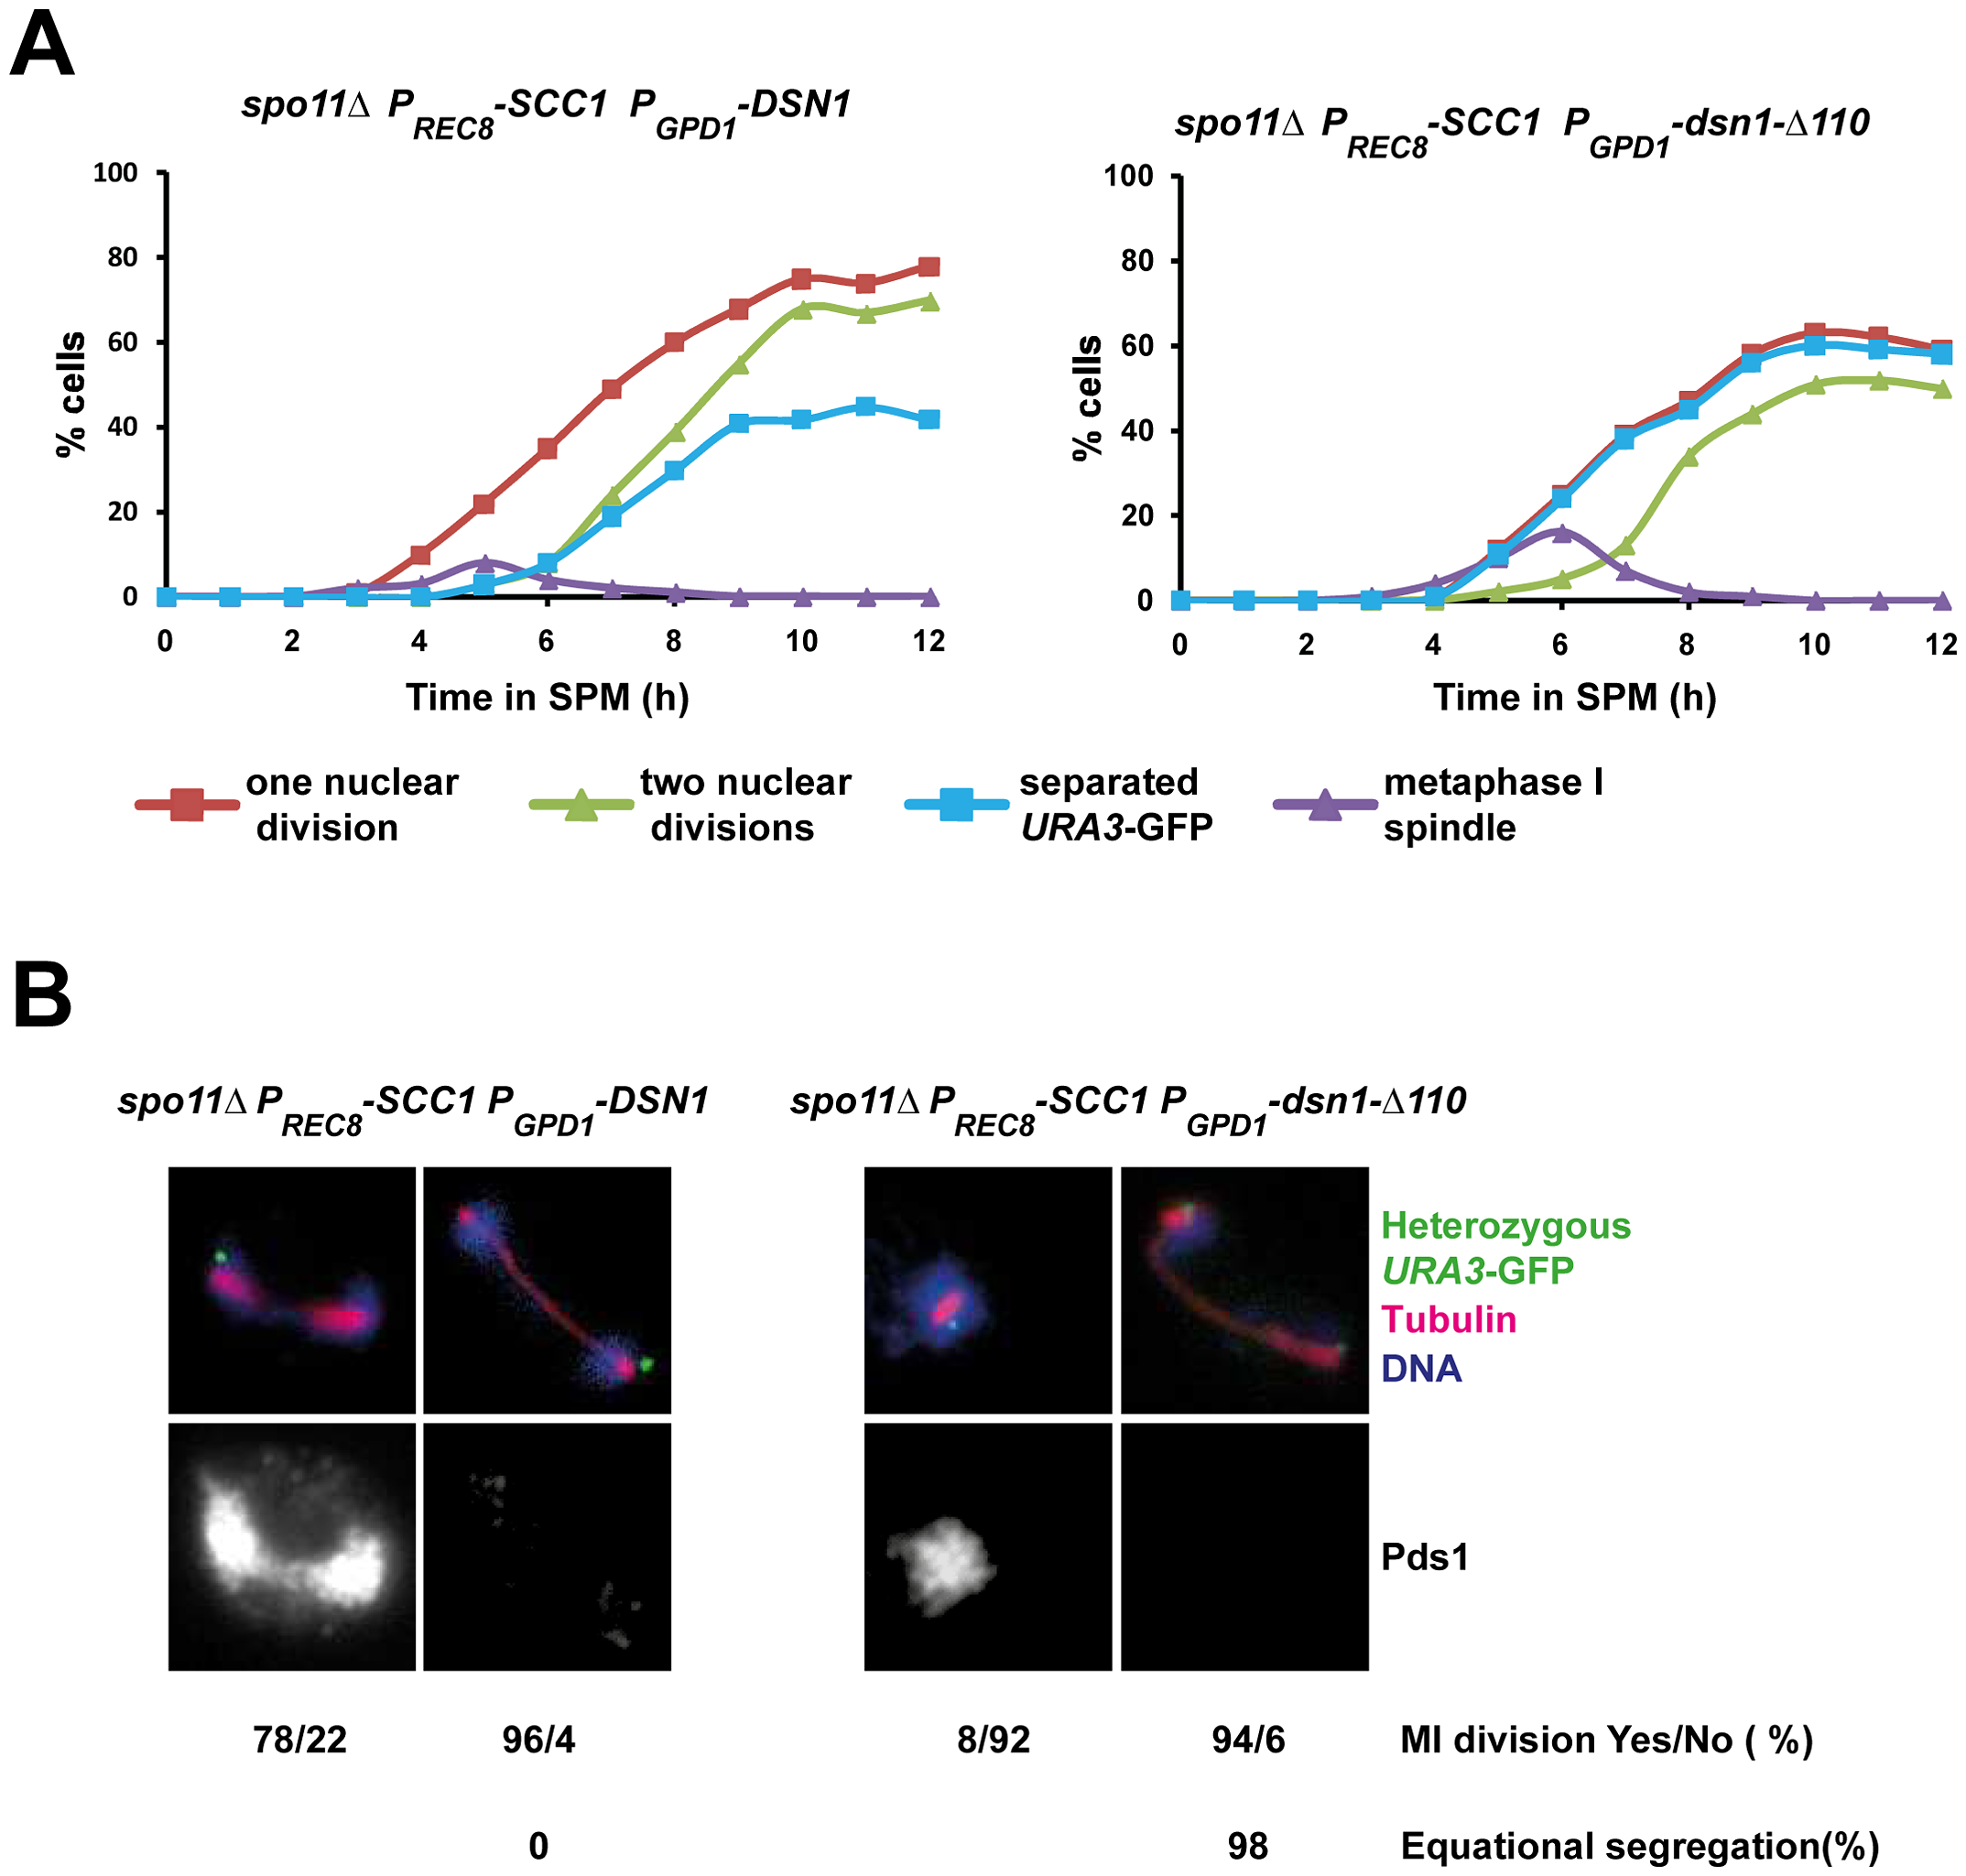 Replacement of cohesin subunit Rec8 by Scc1 rescues the nuclear division defect of <i>P<sub>GPD1</sub>-dsn1-Δ110</i> cells.